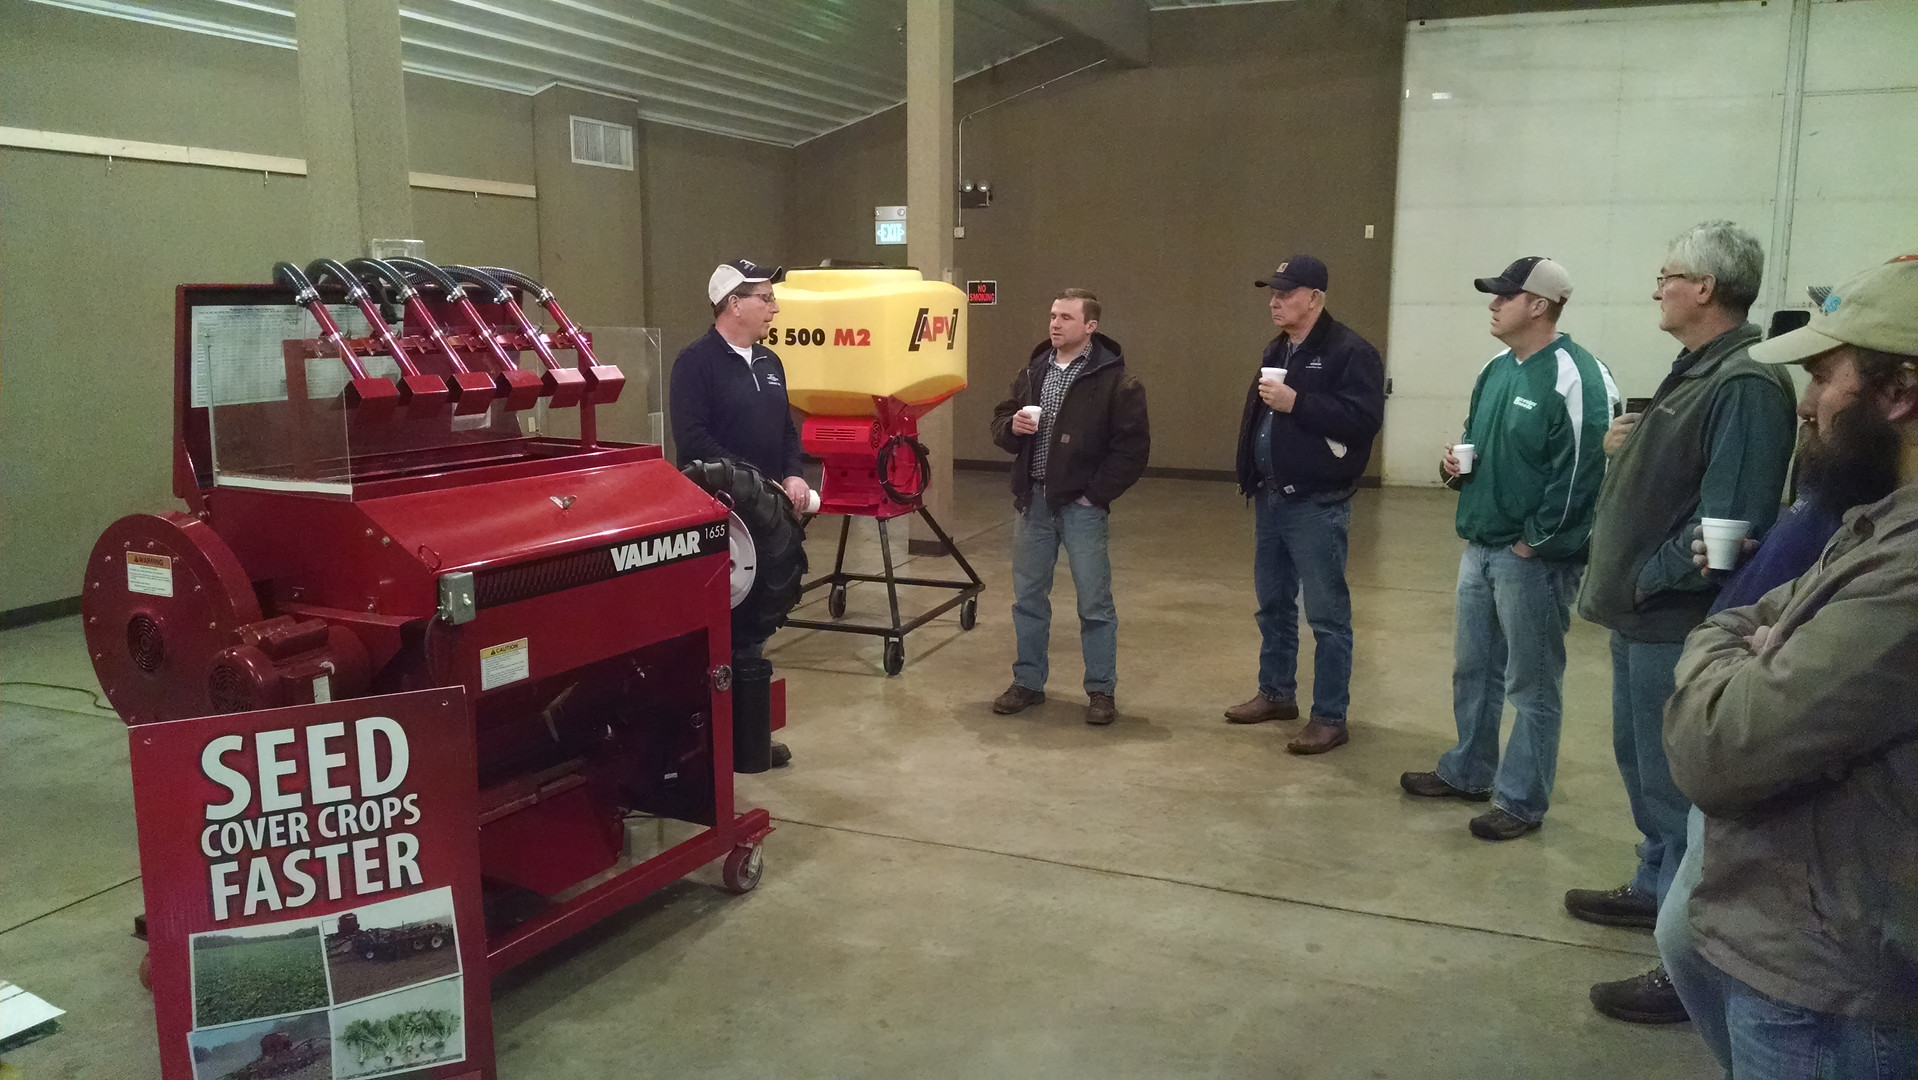 Equipment Workshop for Cover Crop Seedin